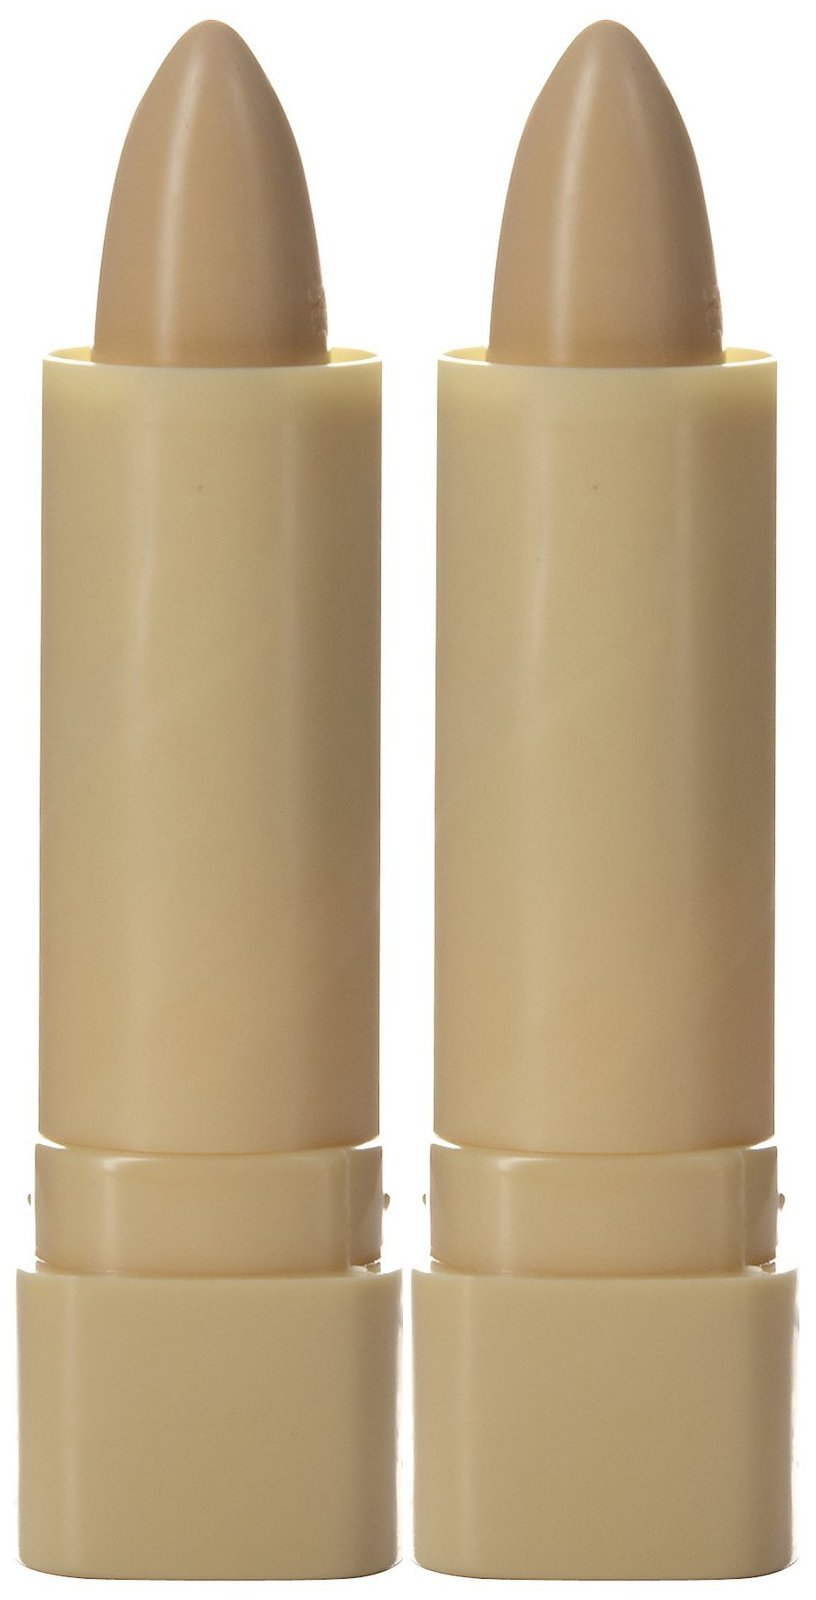 Maybelline Cover Stick Concealer - Yellow Crct Dk Circl - 2 Pack